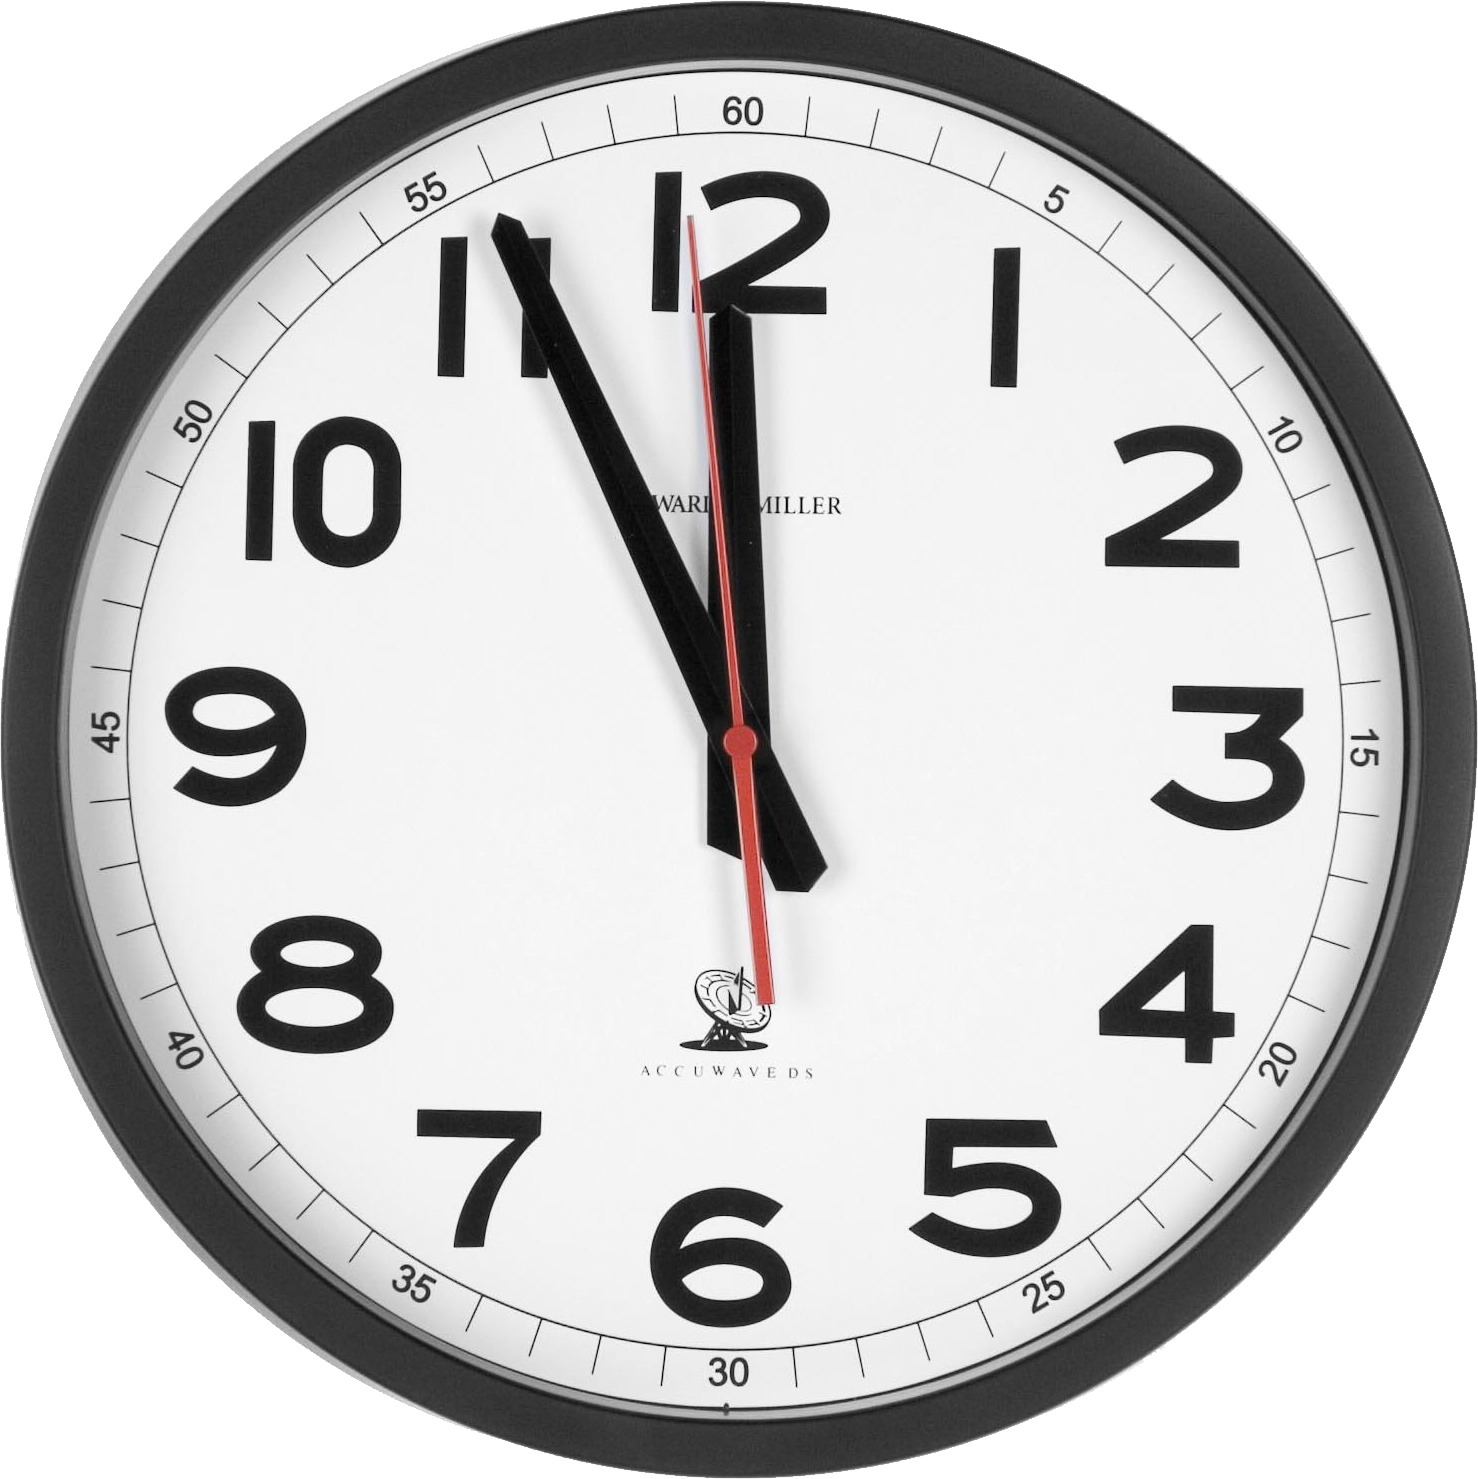 Stopwatch clipart. Clock png image